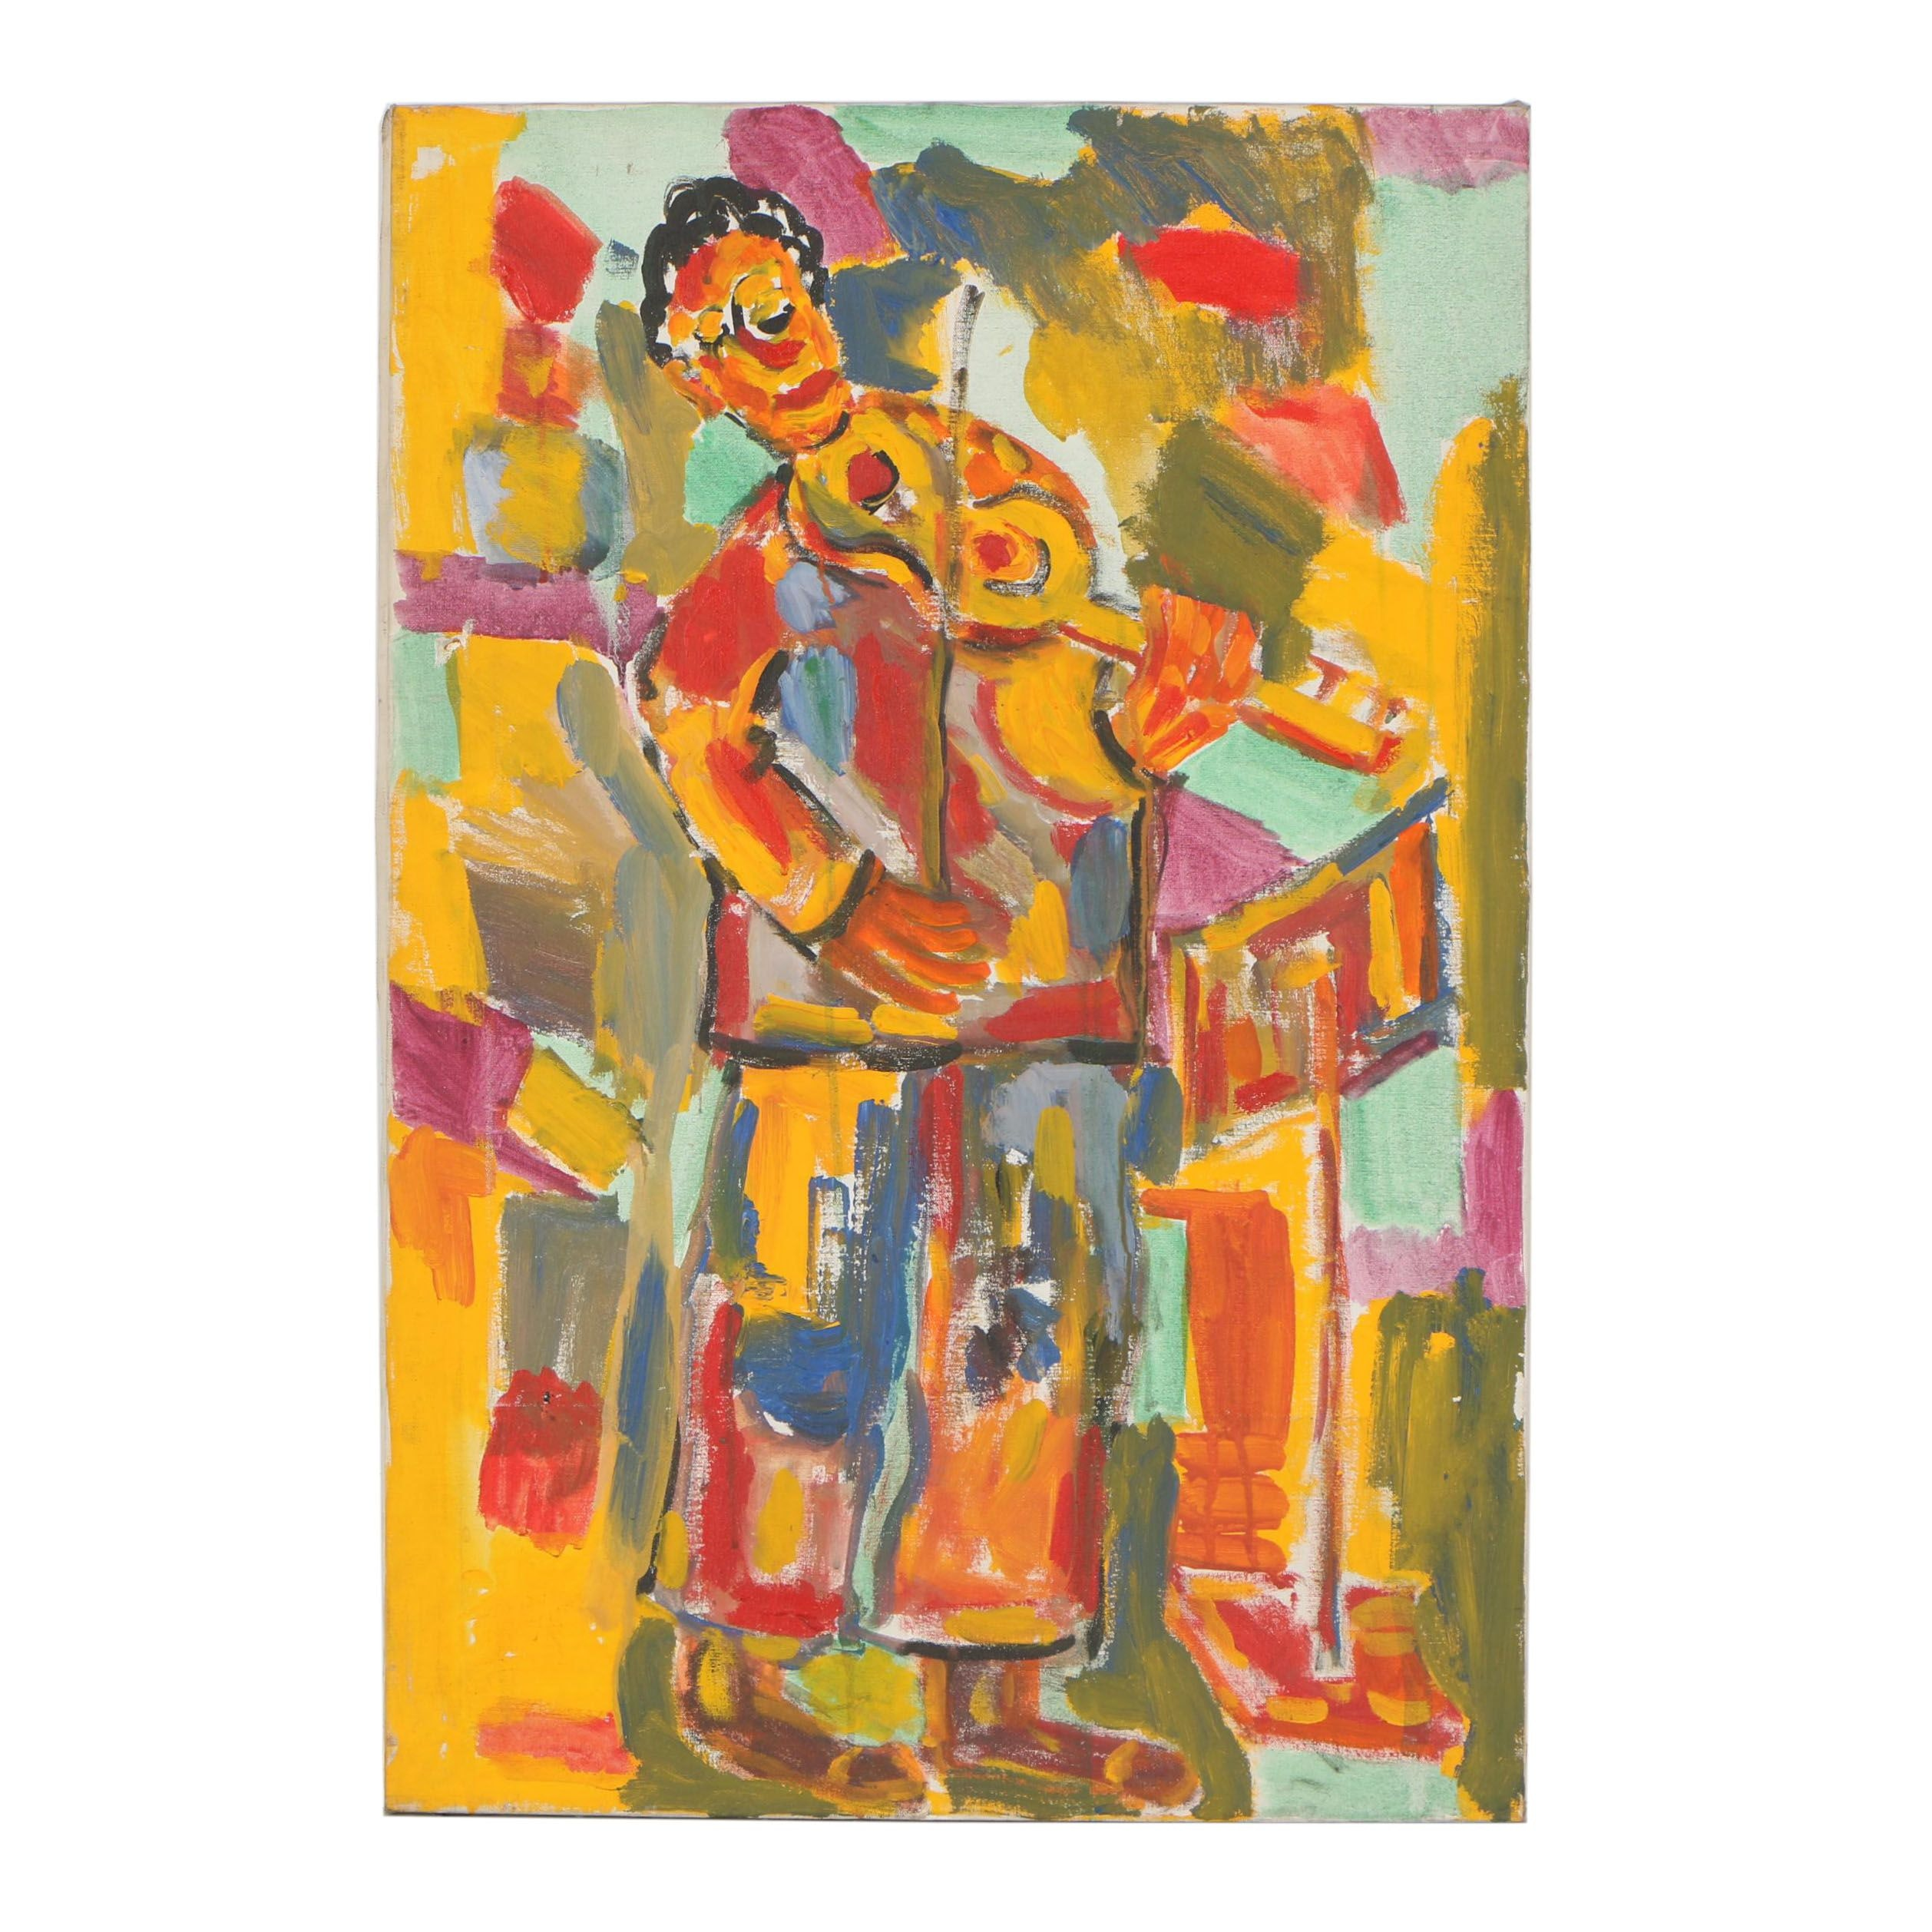 Late 20th Century Abstract Oil Painting of Violinist